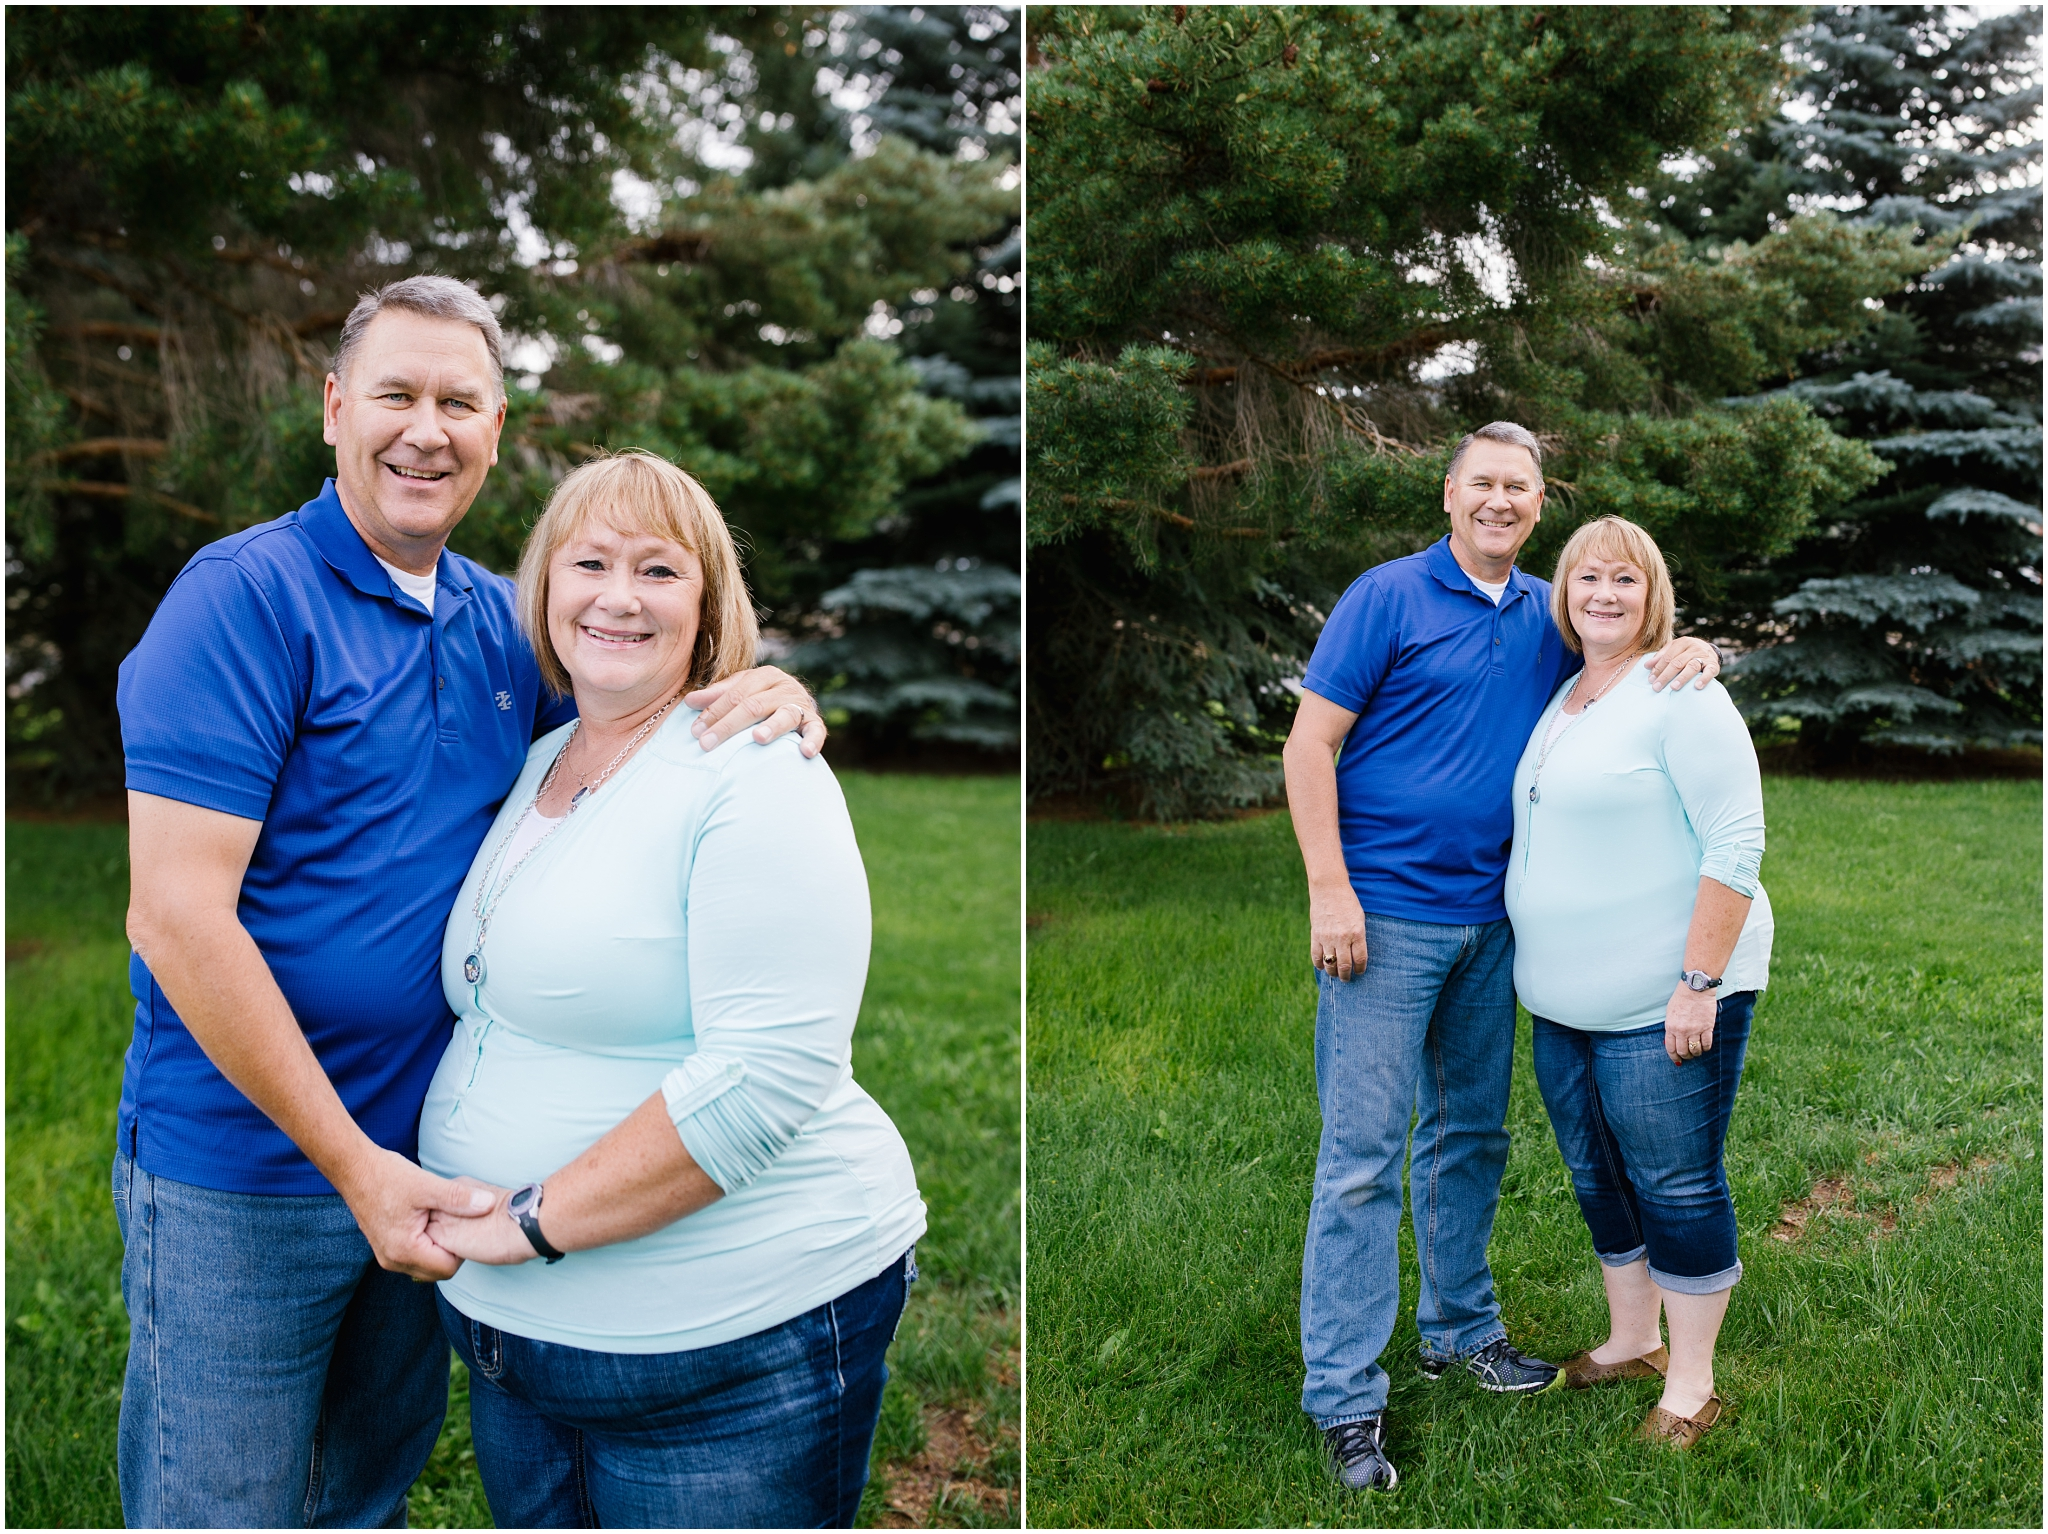 Brinkerhoff-109_Lizzie-B-Imagery-Utah-Family-Photographer-Central-Utah-Photographer-Utah-County-Extended-Family-Session.jpg